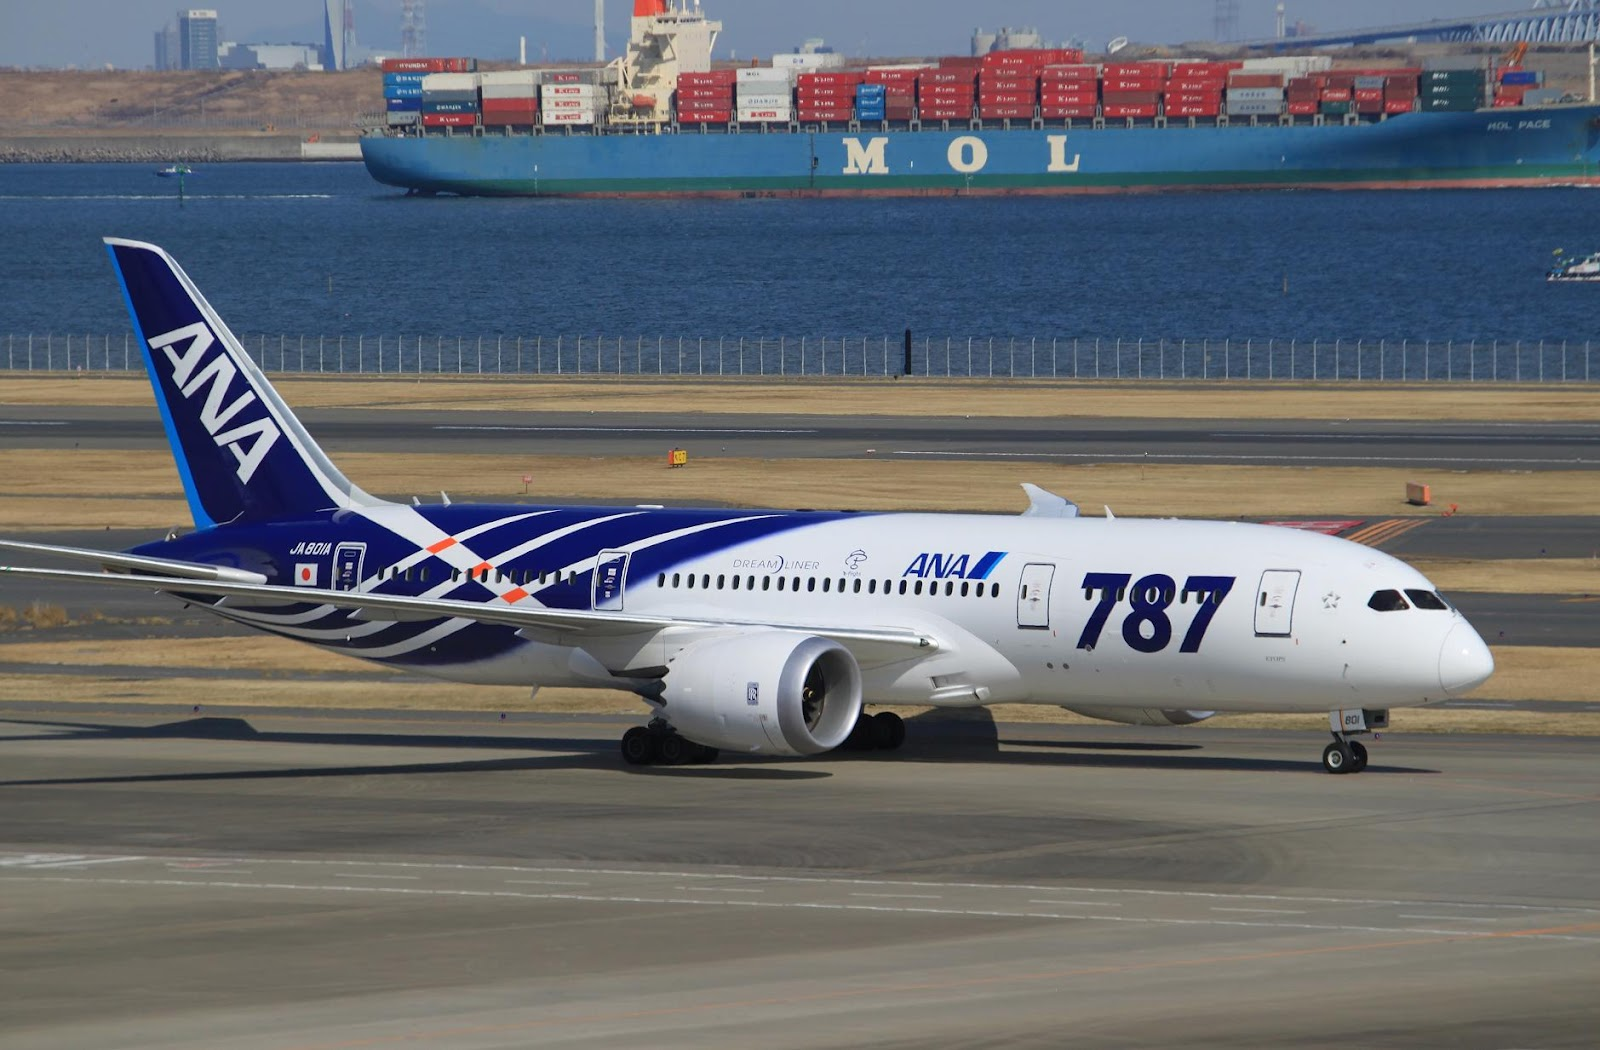 ana_boeing_787_dreamliner_taxiing